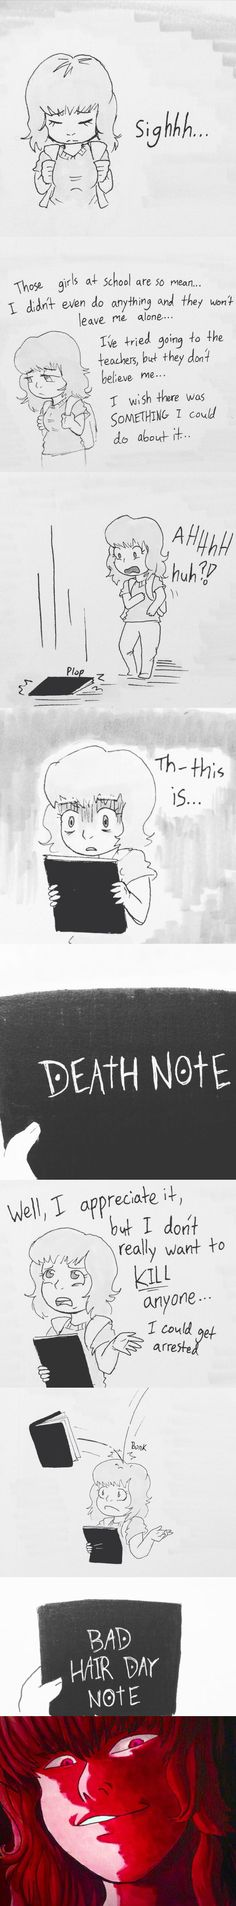 Tags: Death Note, bad hair day